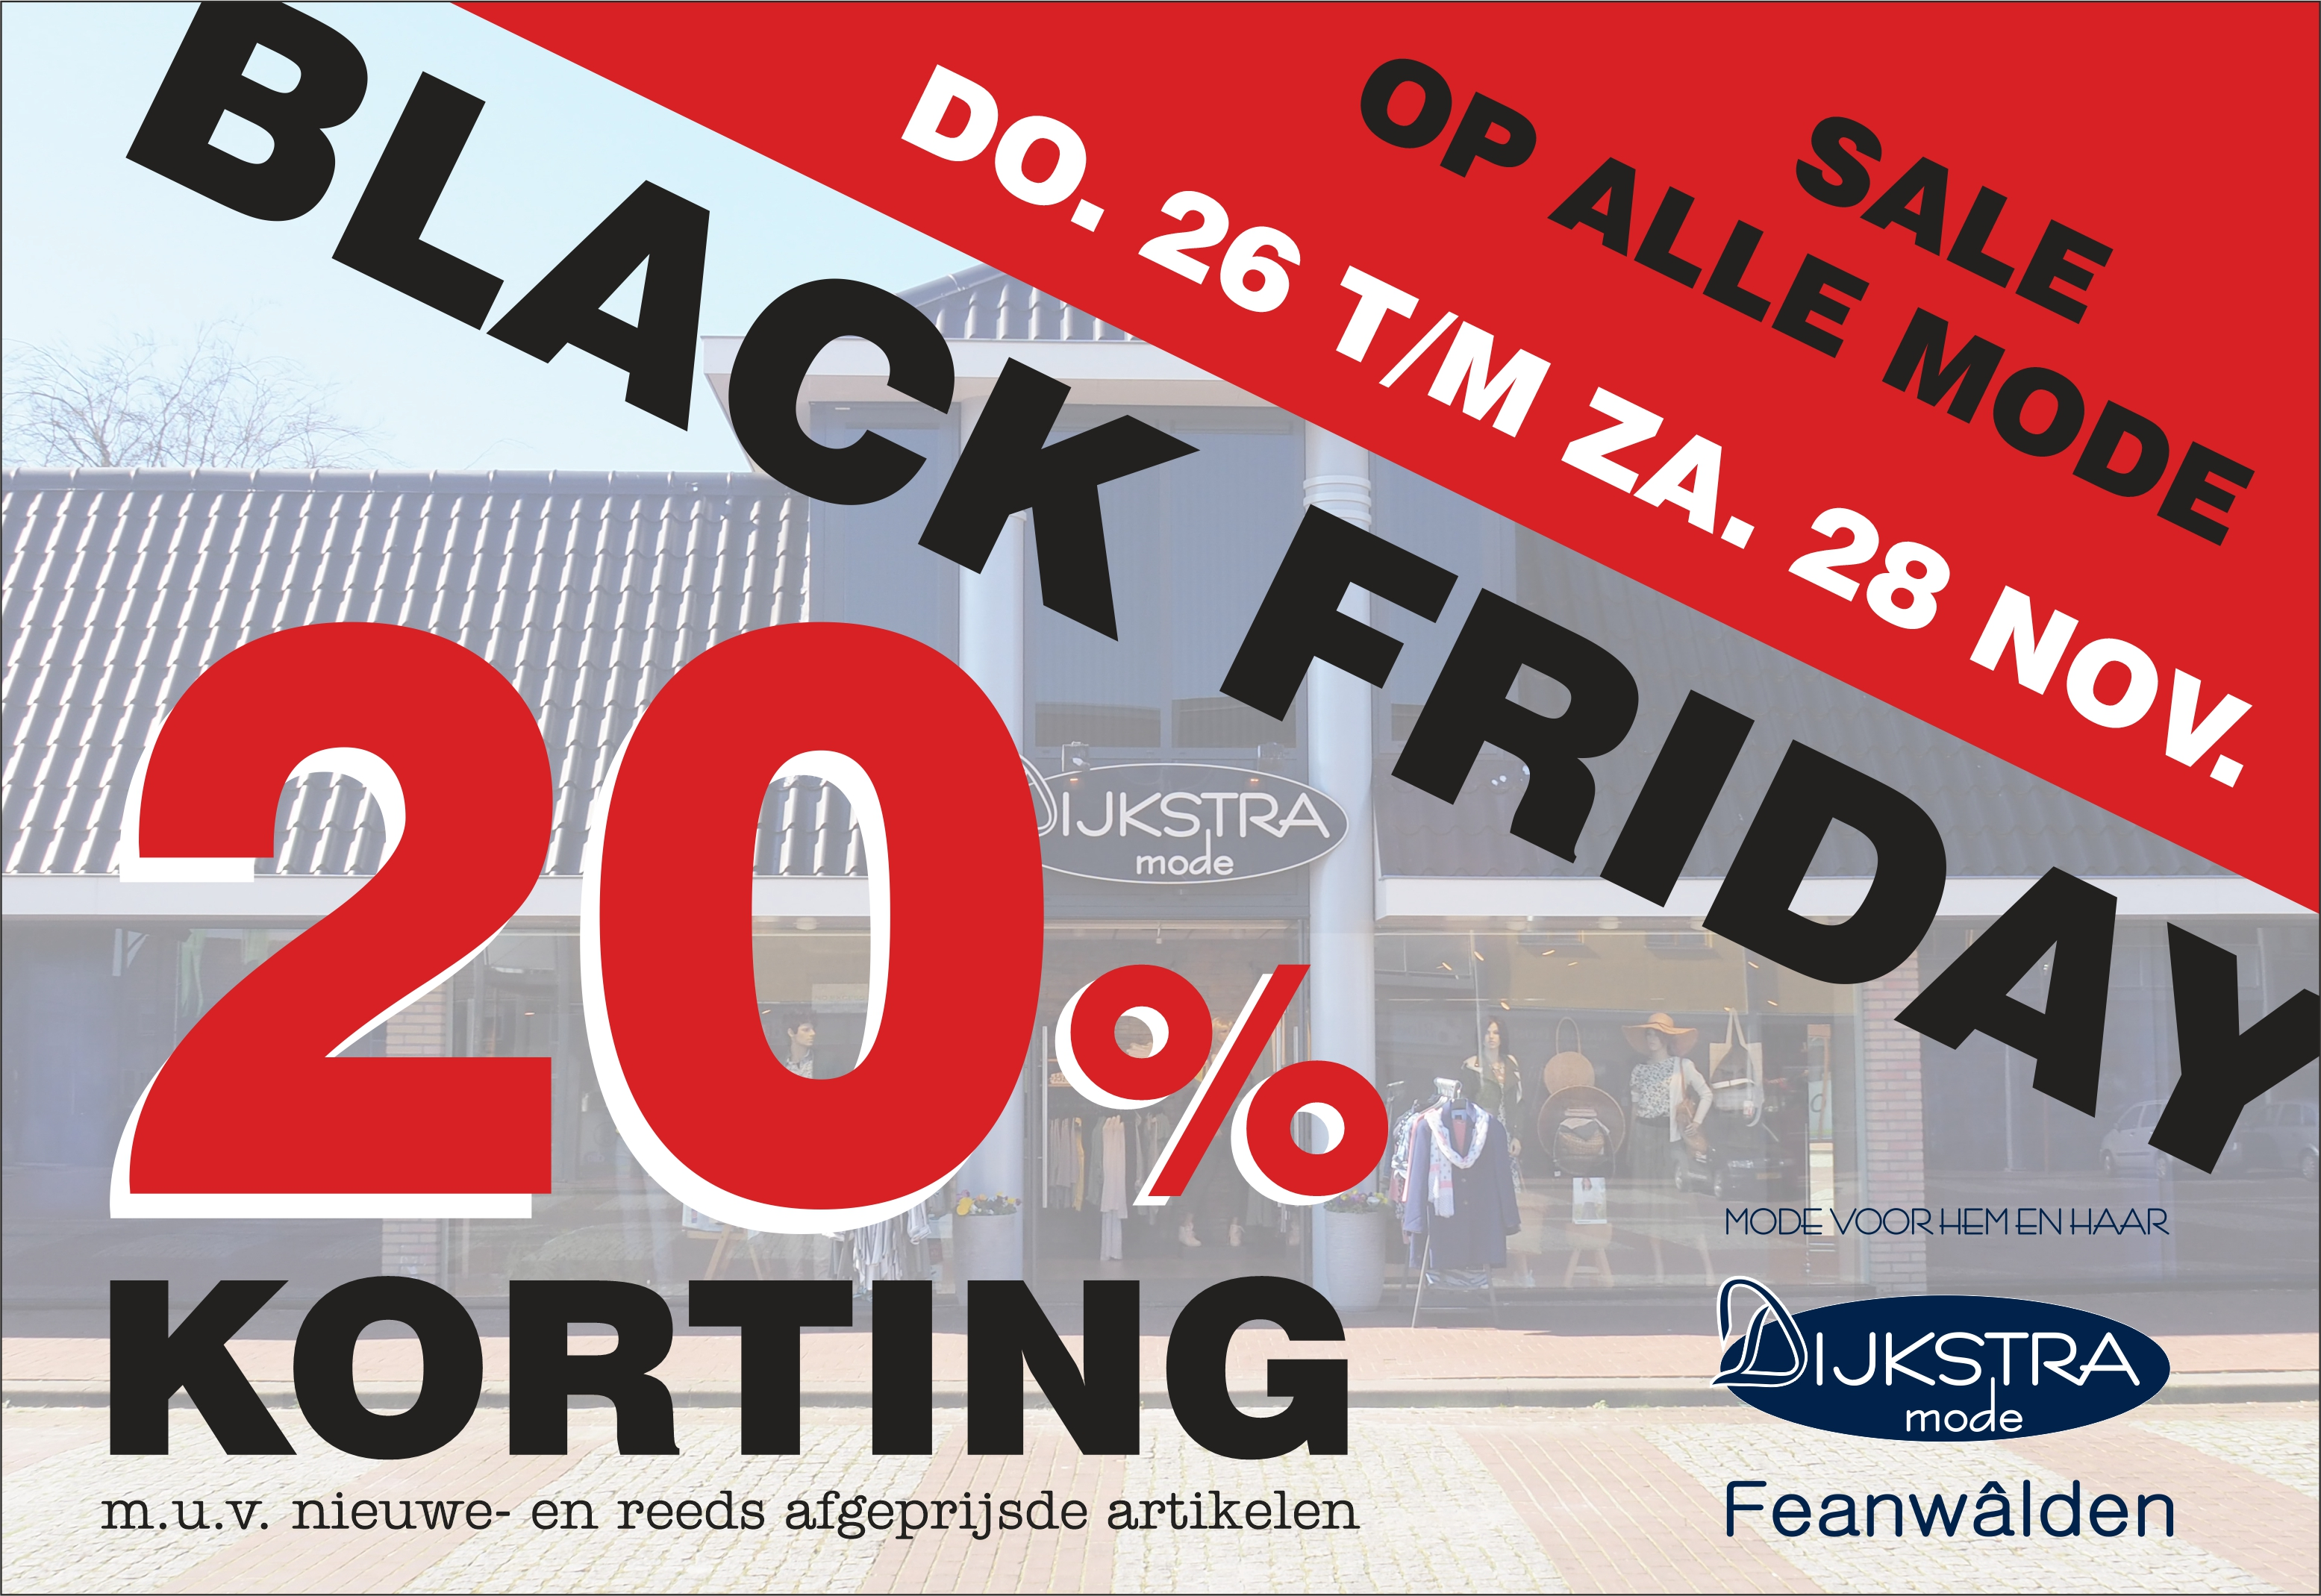 BLACK FRIDAY do. 26 nov. t/m zat 28 november - 20% korting op alle mode.